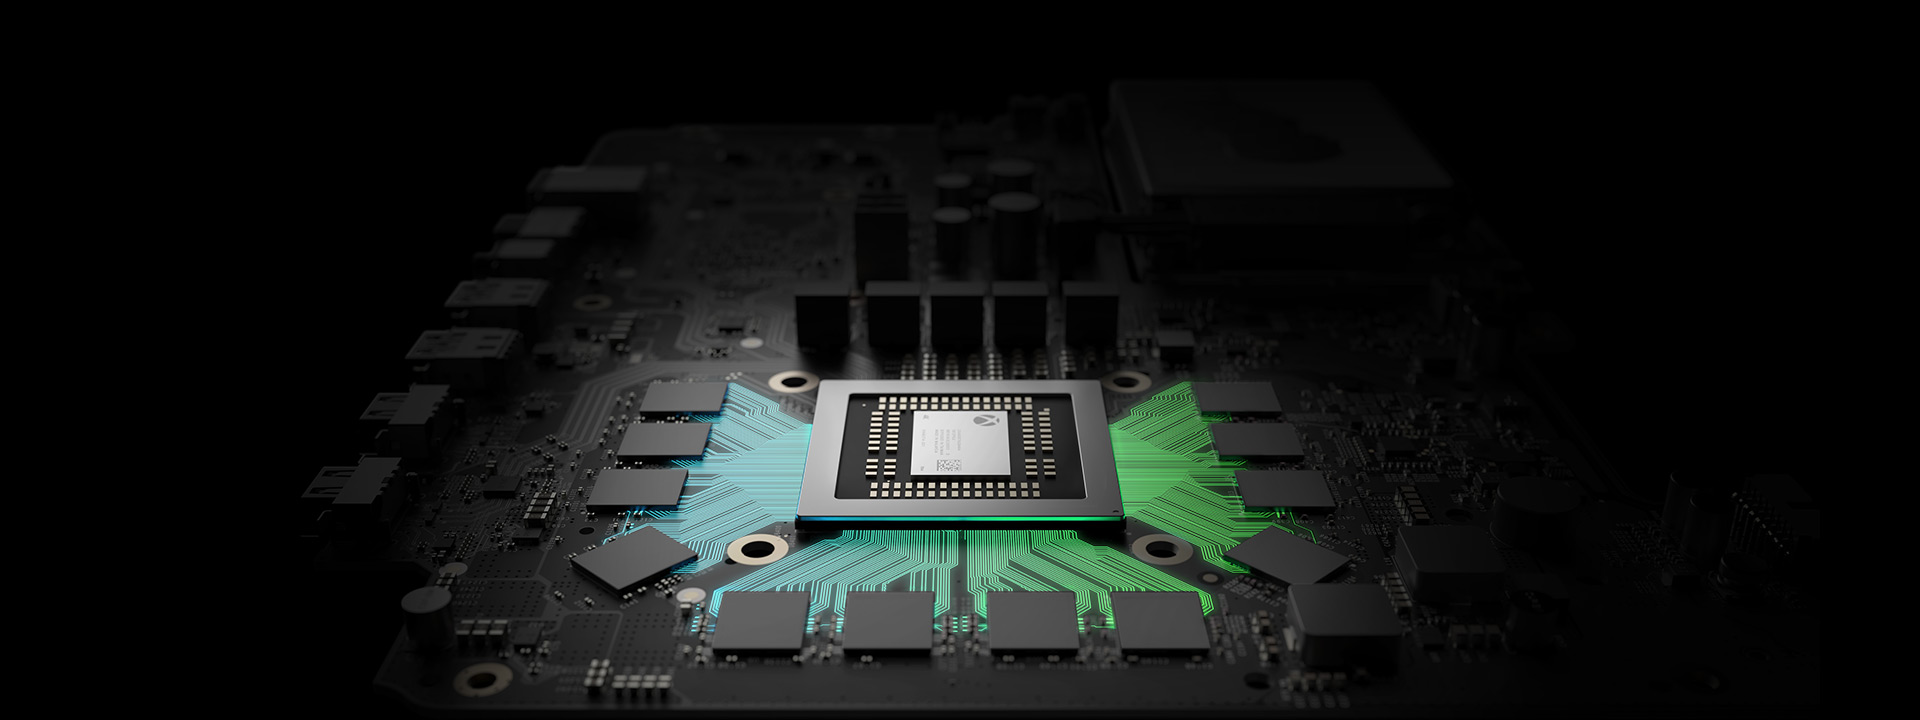 Xbox Scorpio is a lock for $499 according to Geoff Keighley screenshot